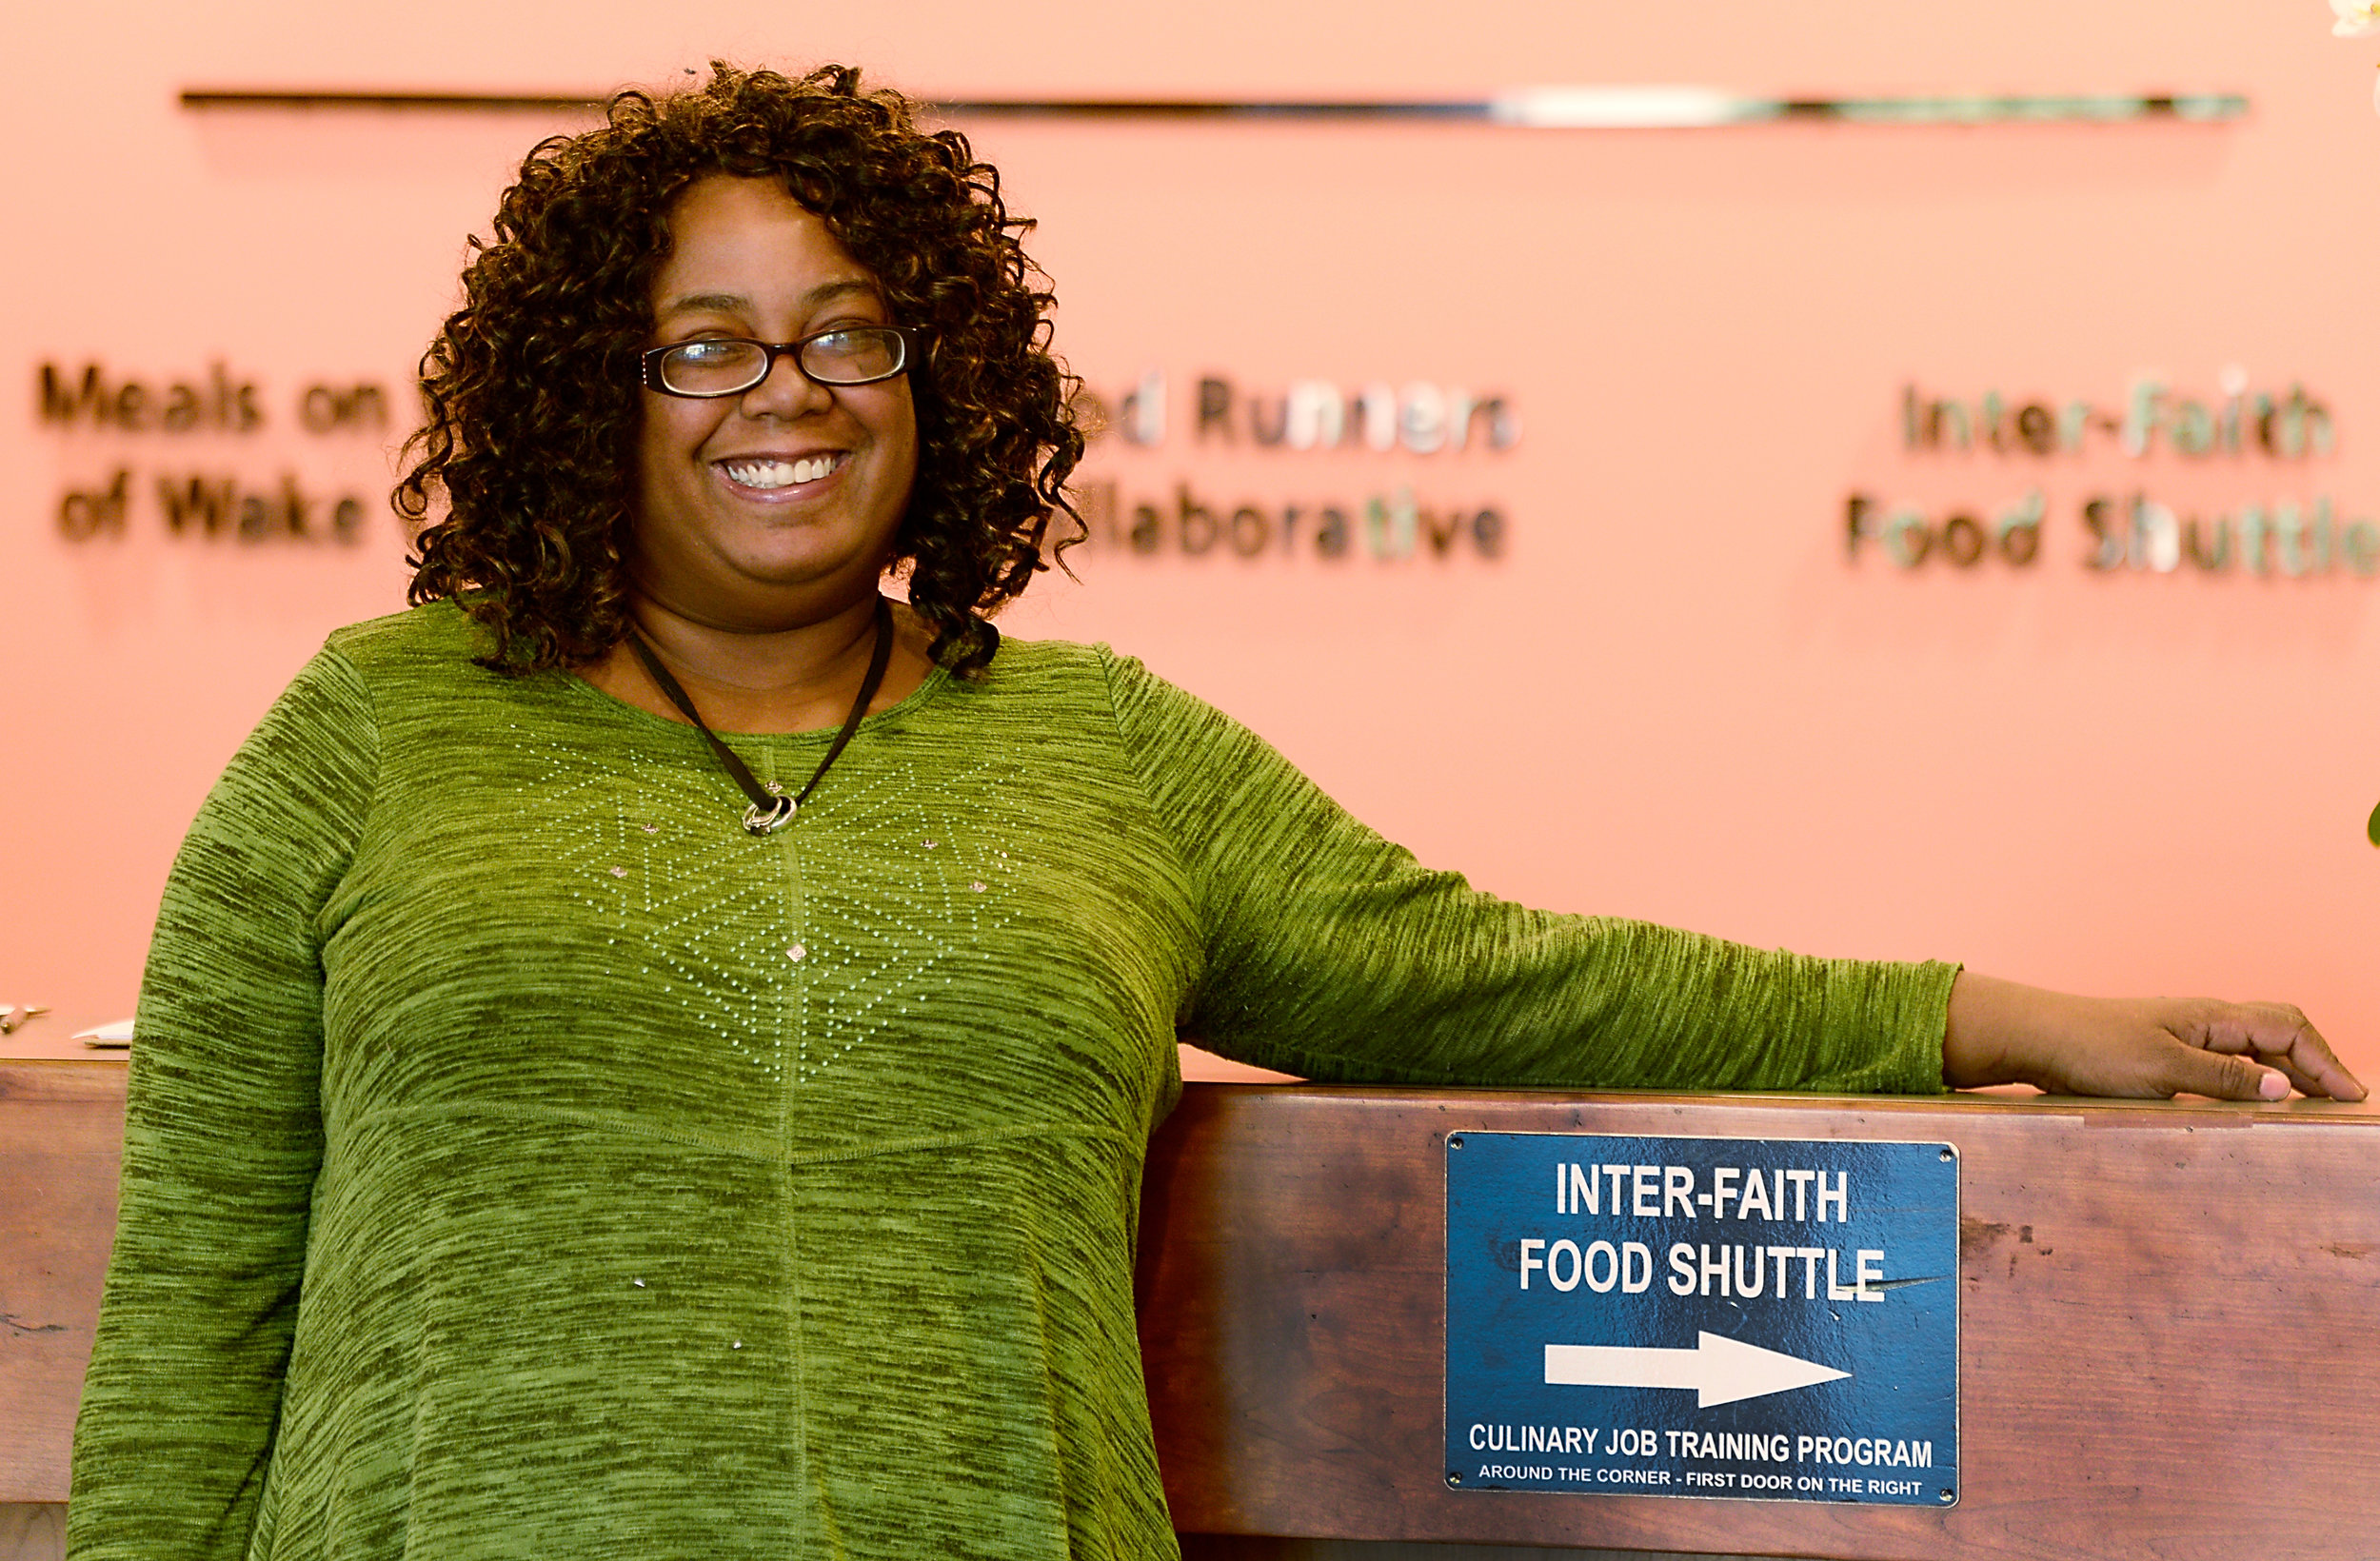 Kim interned at Food Shuttle after graduating from the Workforce Readiness program.